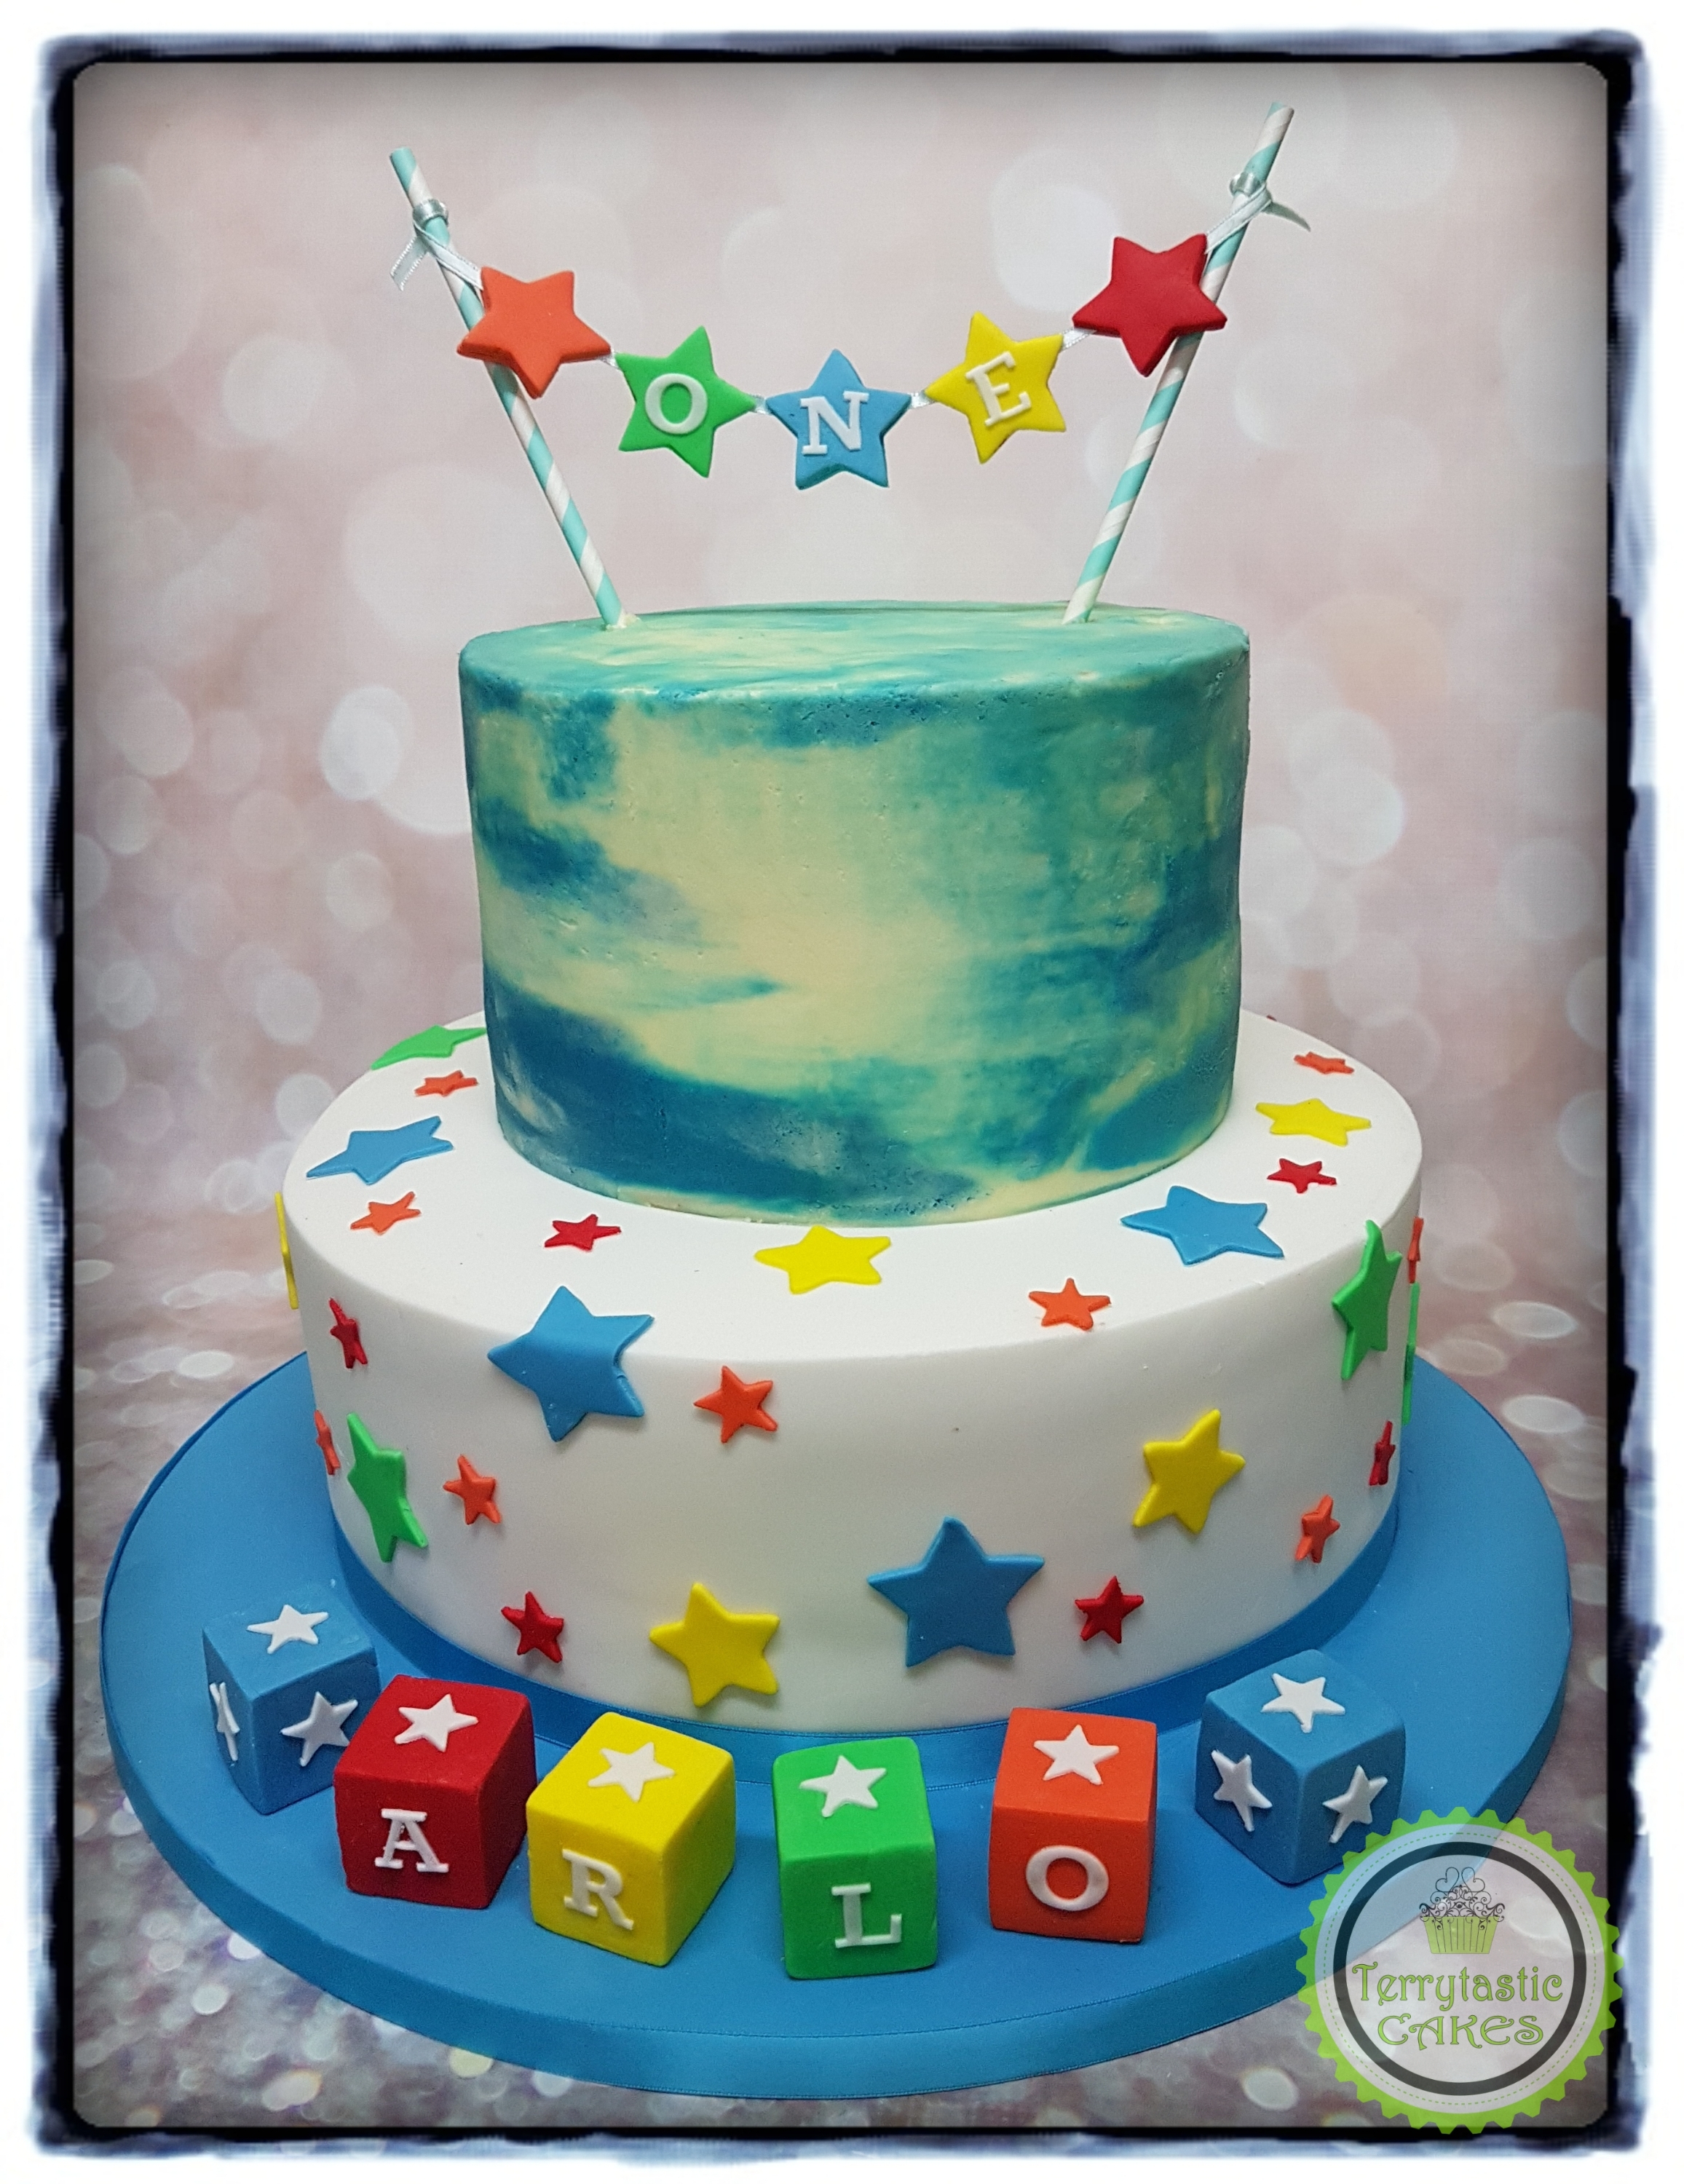 1St Birthday Cake Boy 1st Birthday Building Blocks Cake Boy Terrytastic Cakes